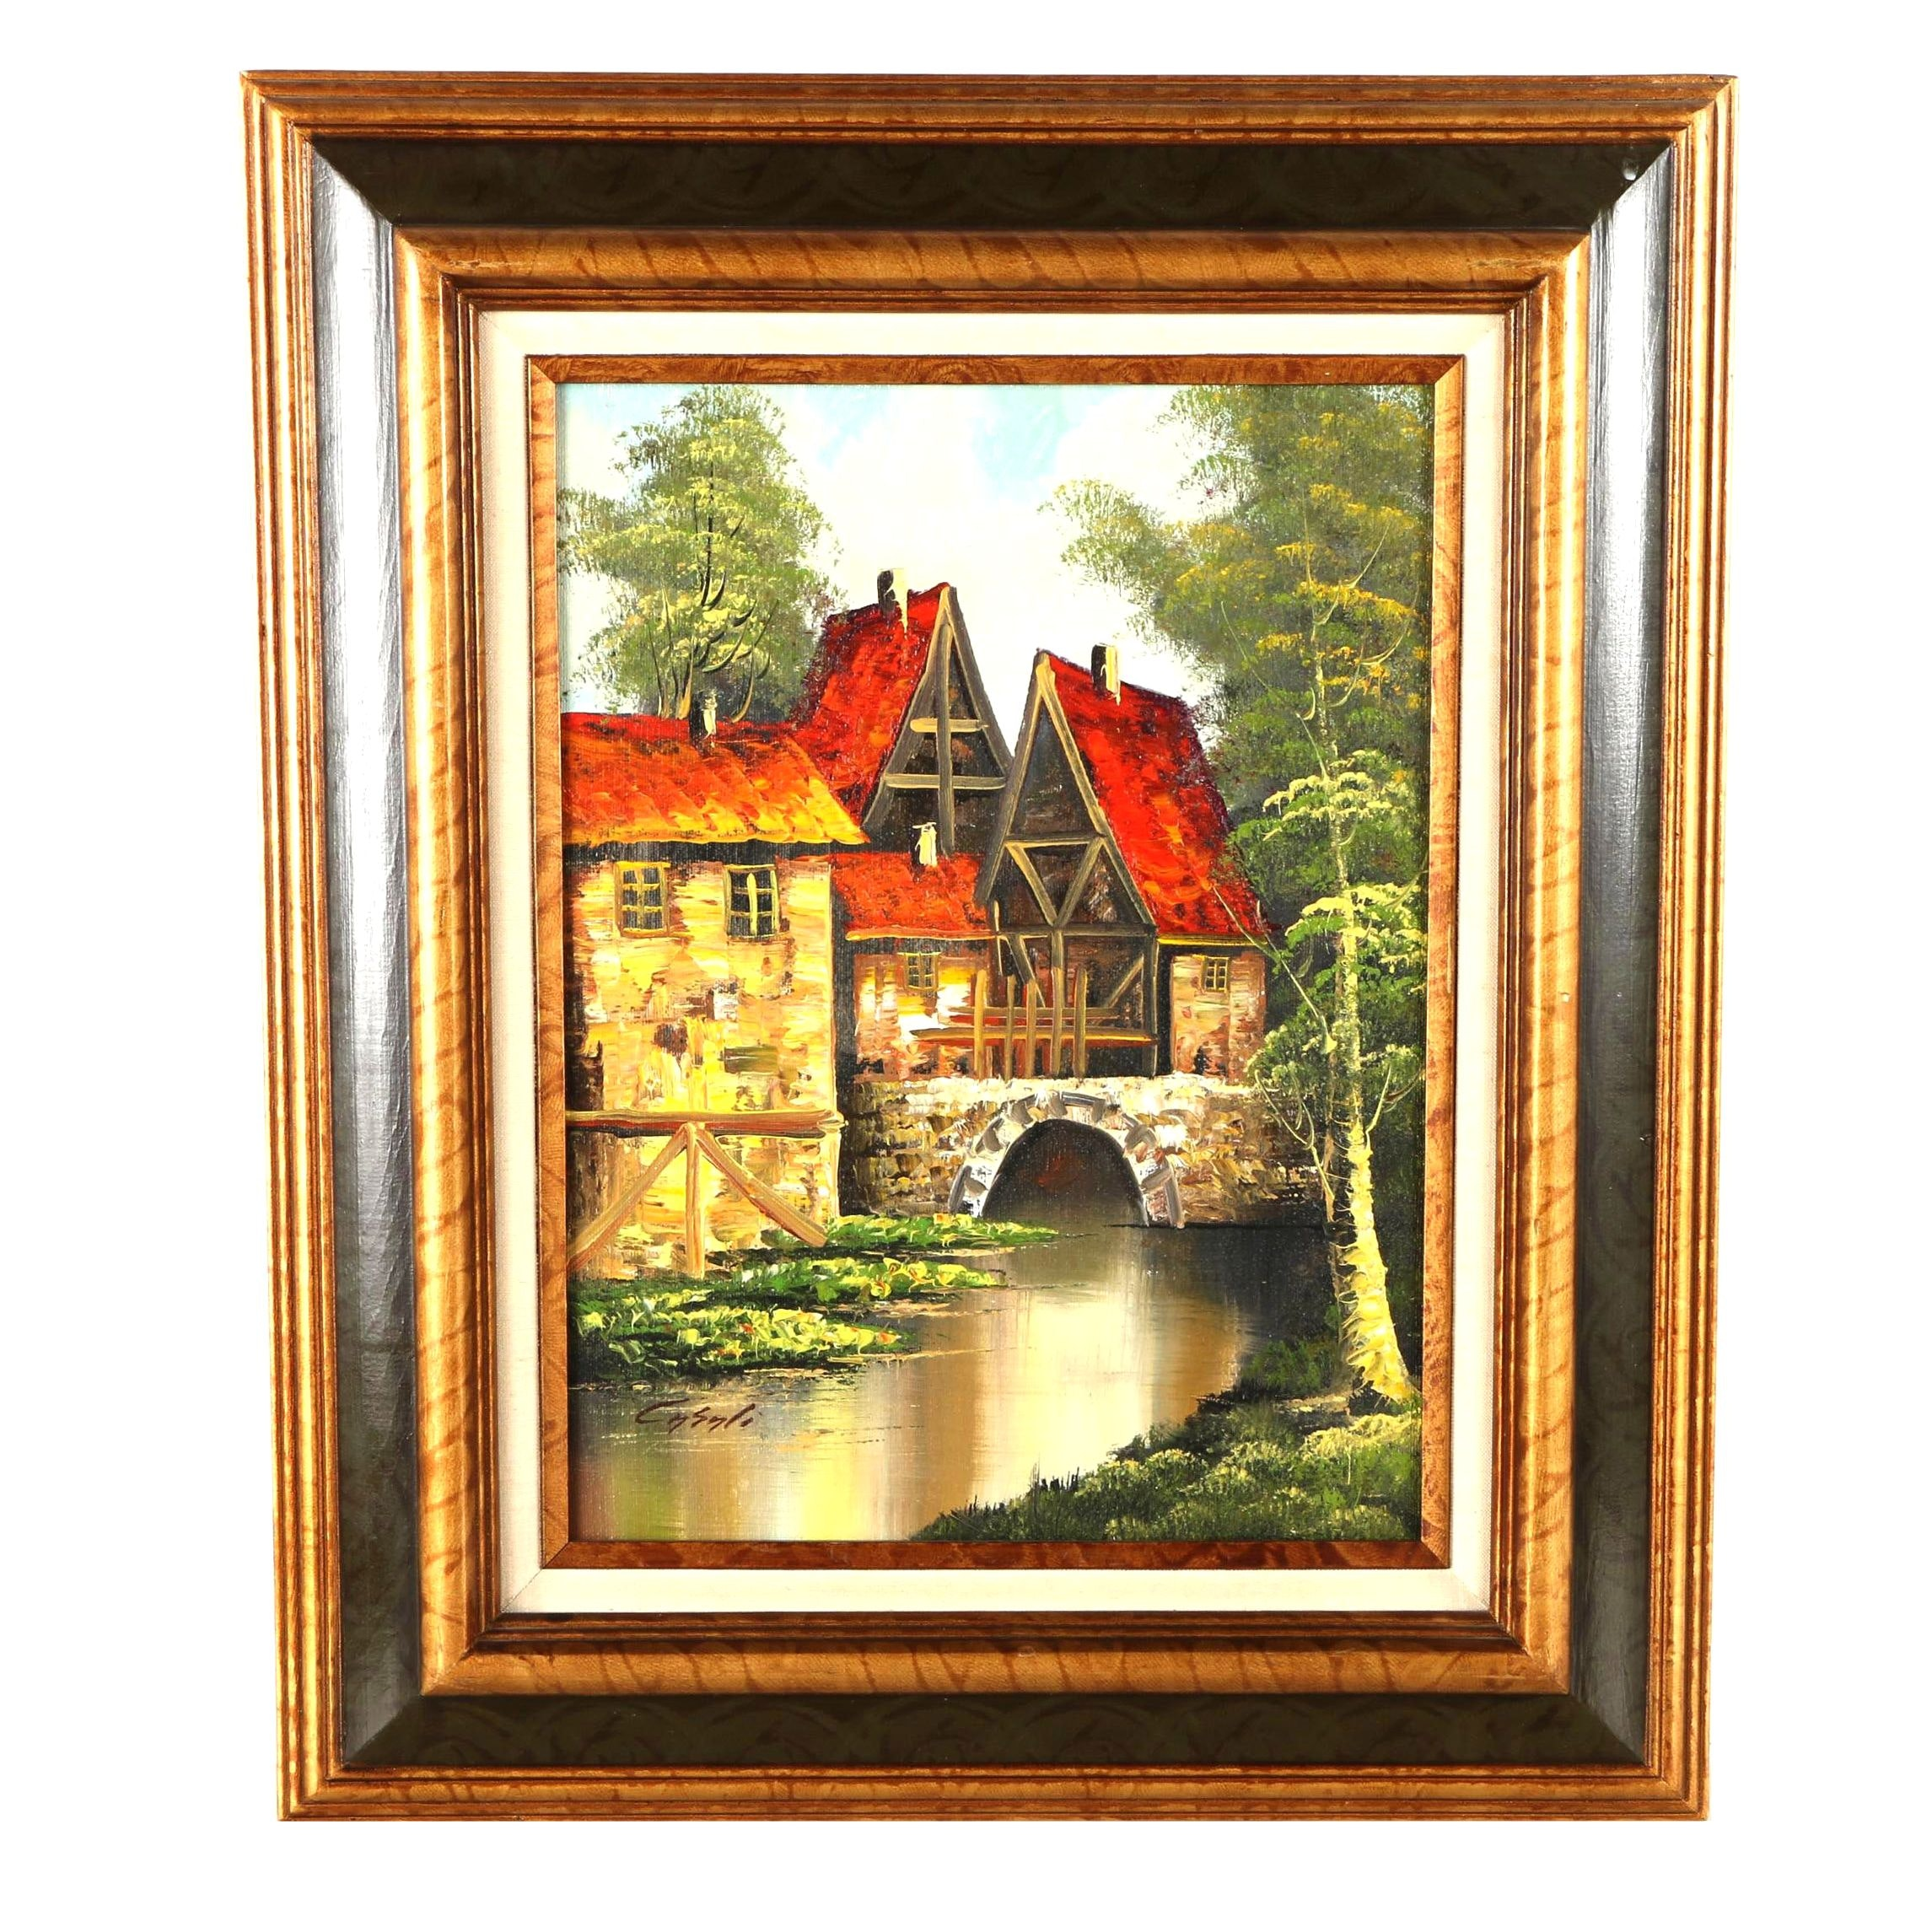 Casali Oil Painting on Canvas of an Old Water Mill House